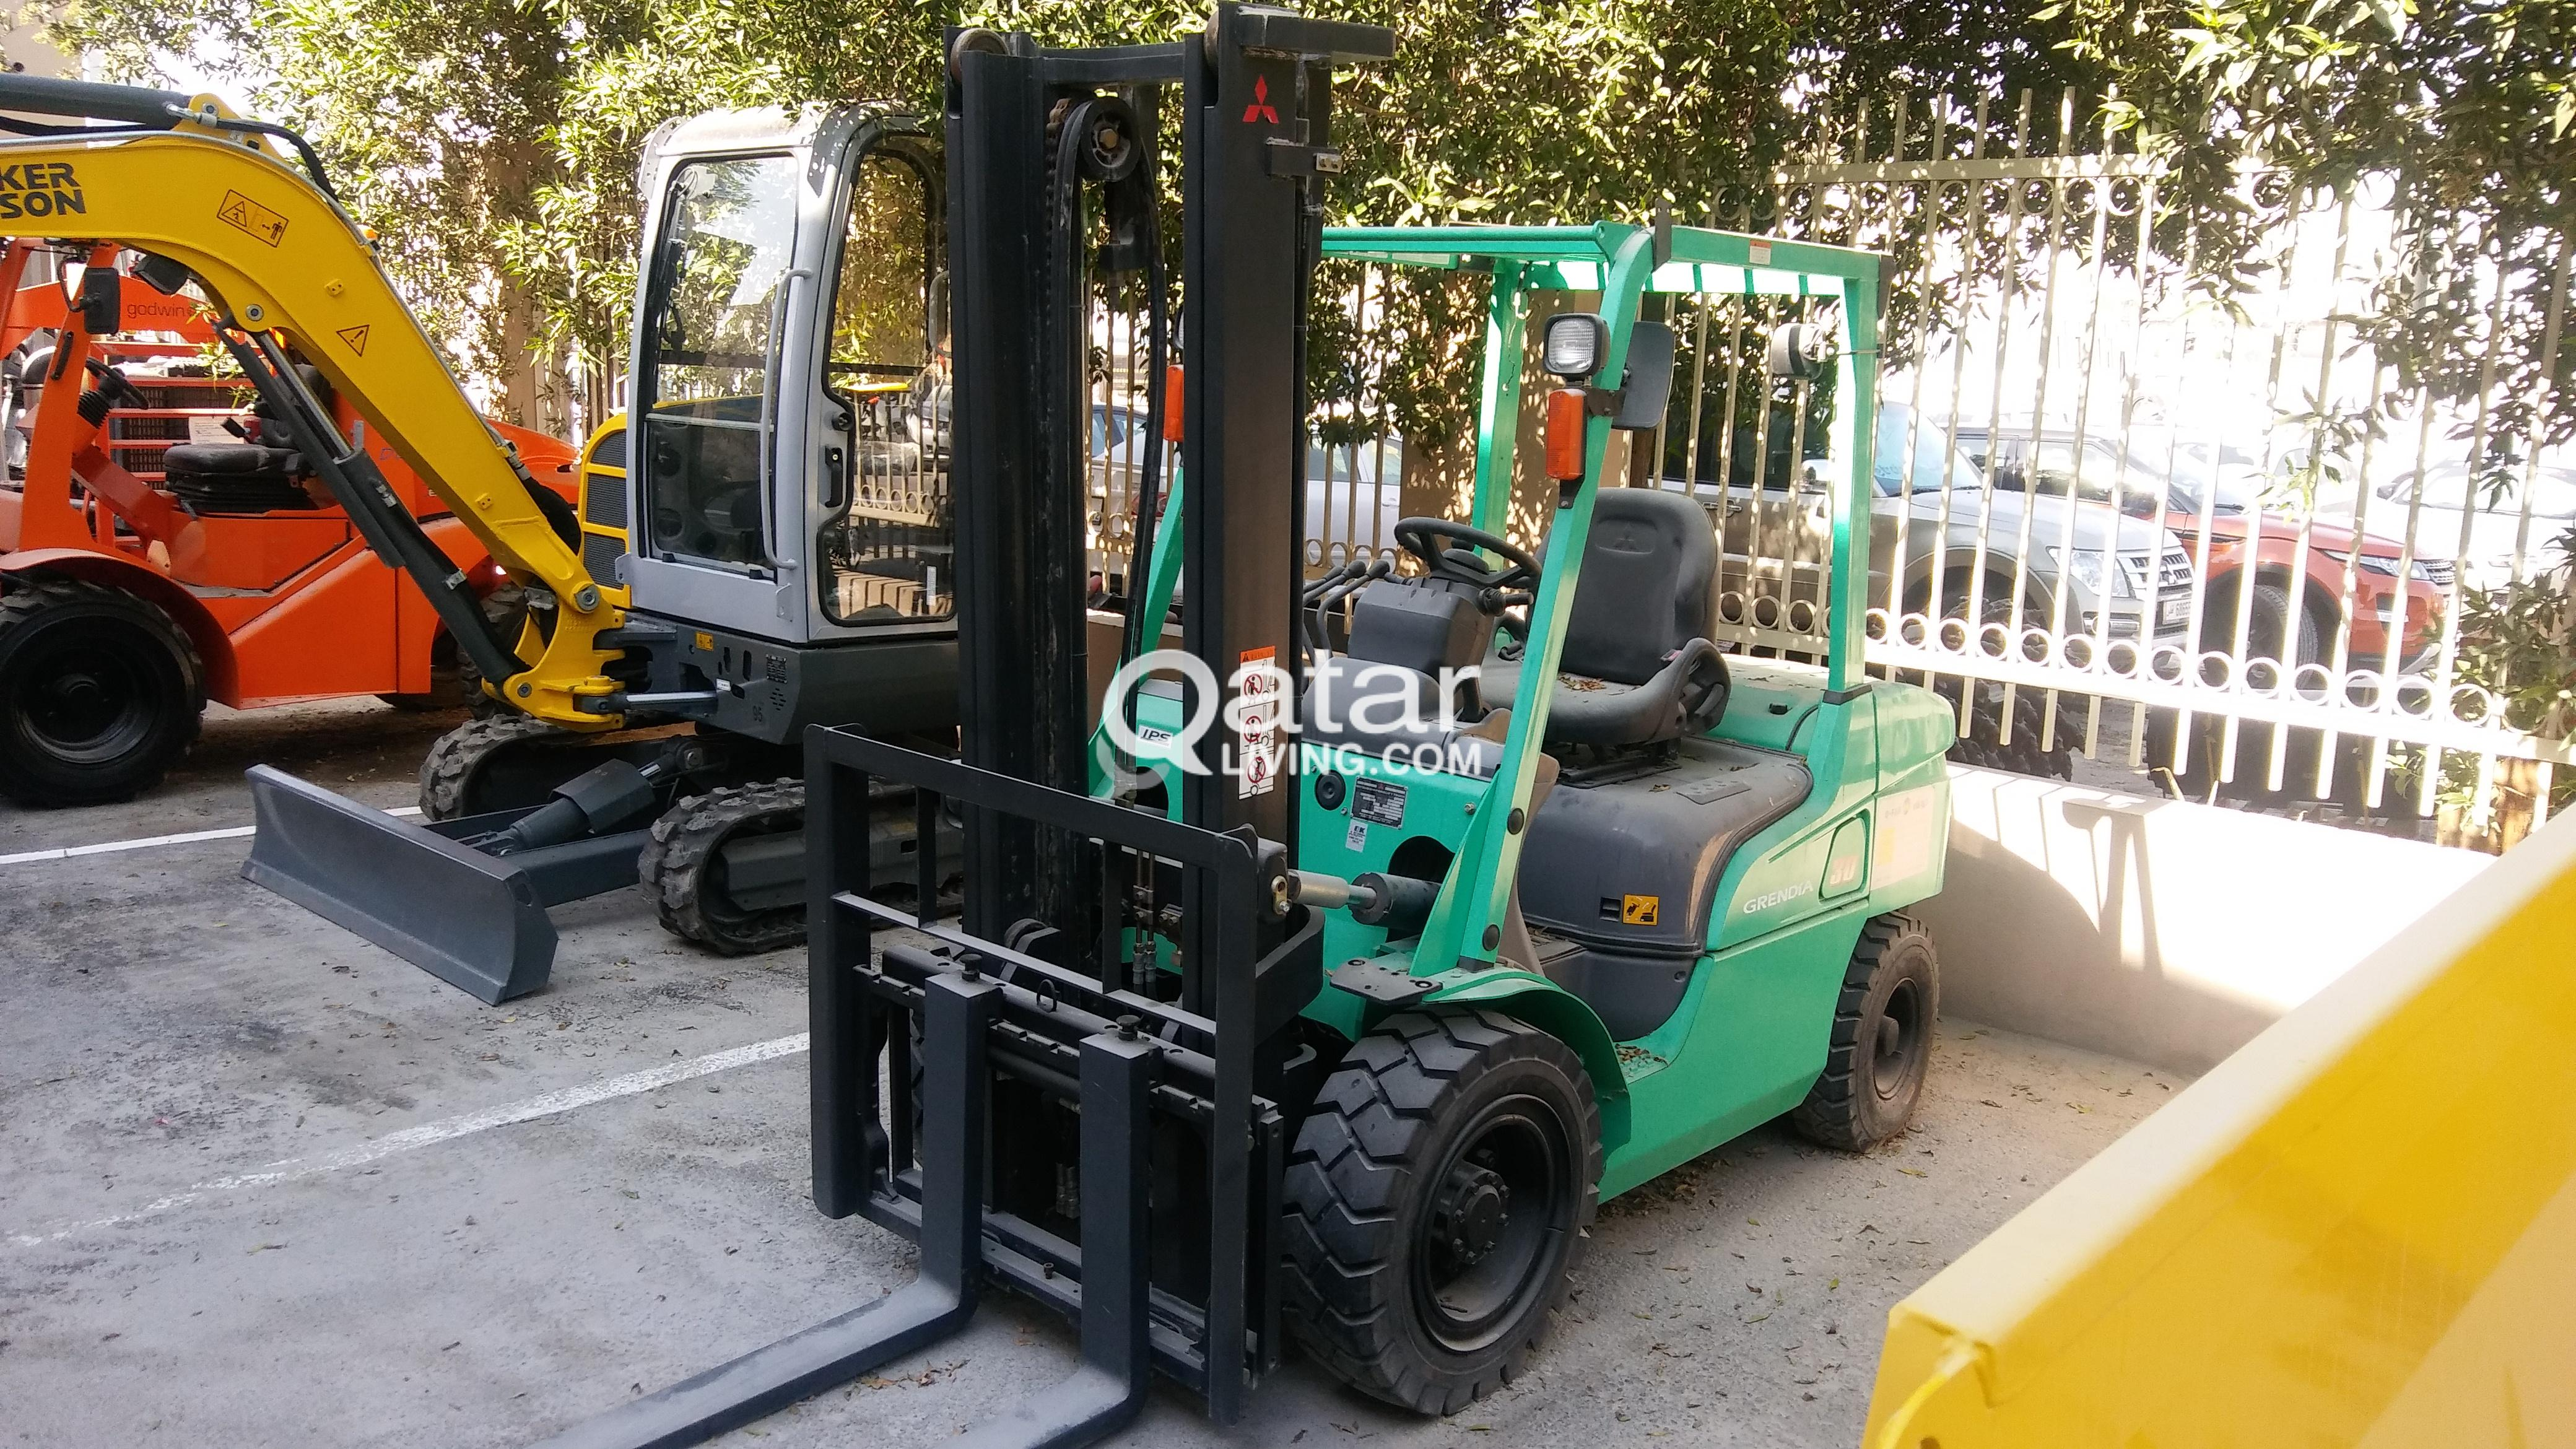 series gx com via image photo mitsubishi forkliftaccessories unicarriers blog forkliftblog forklifts